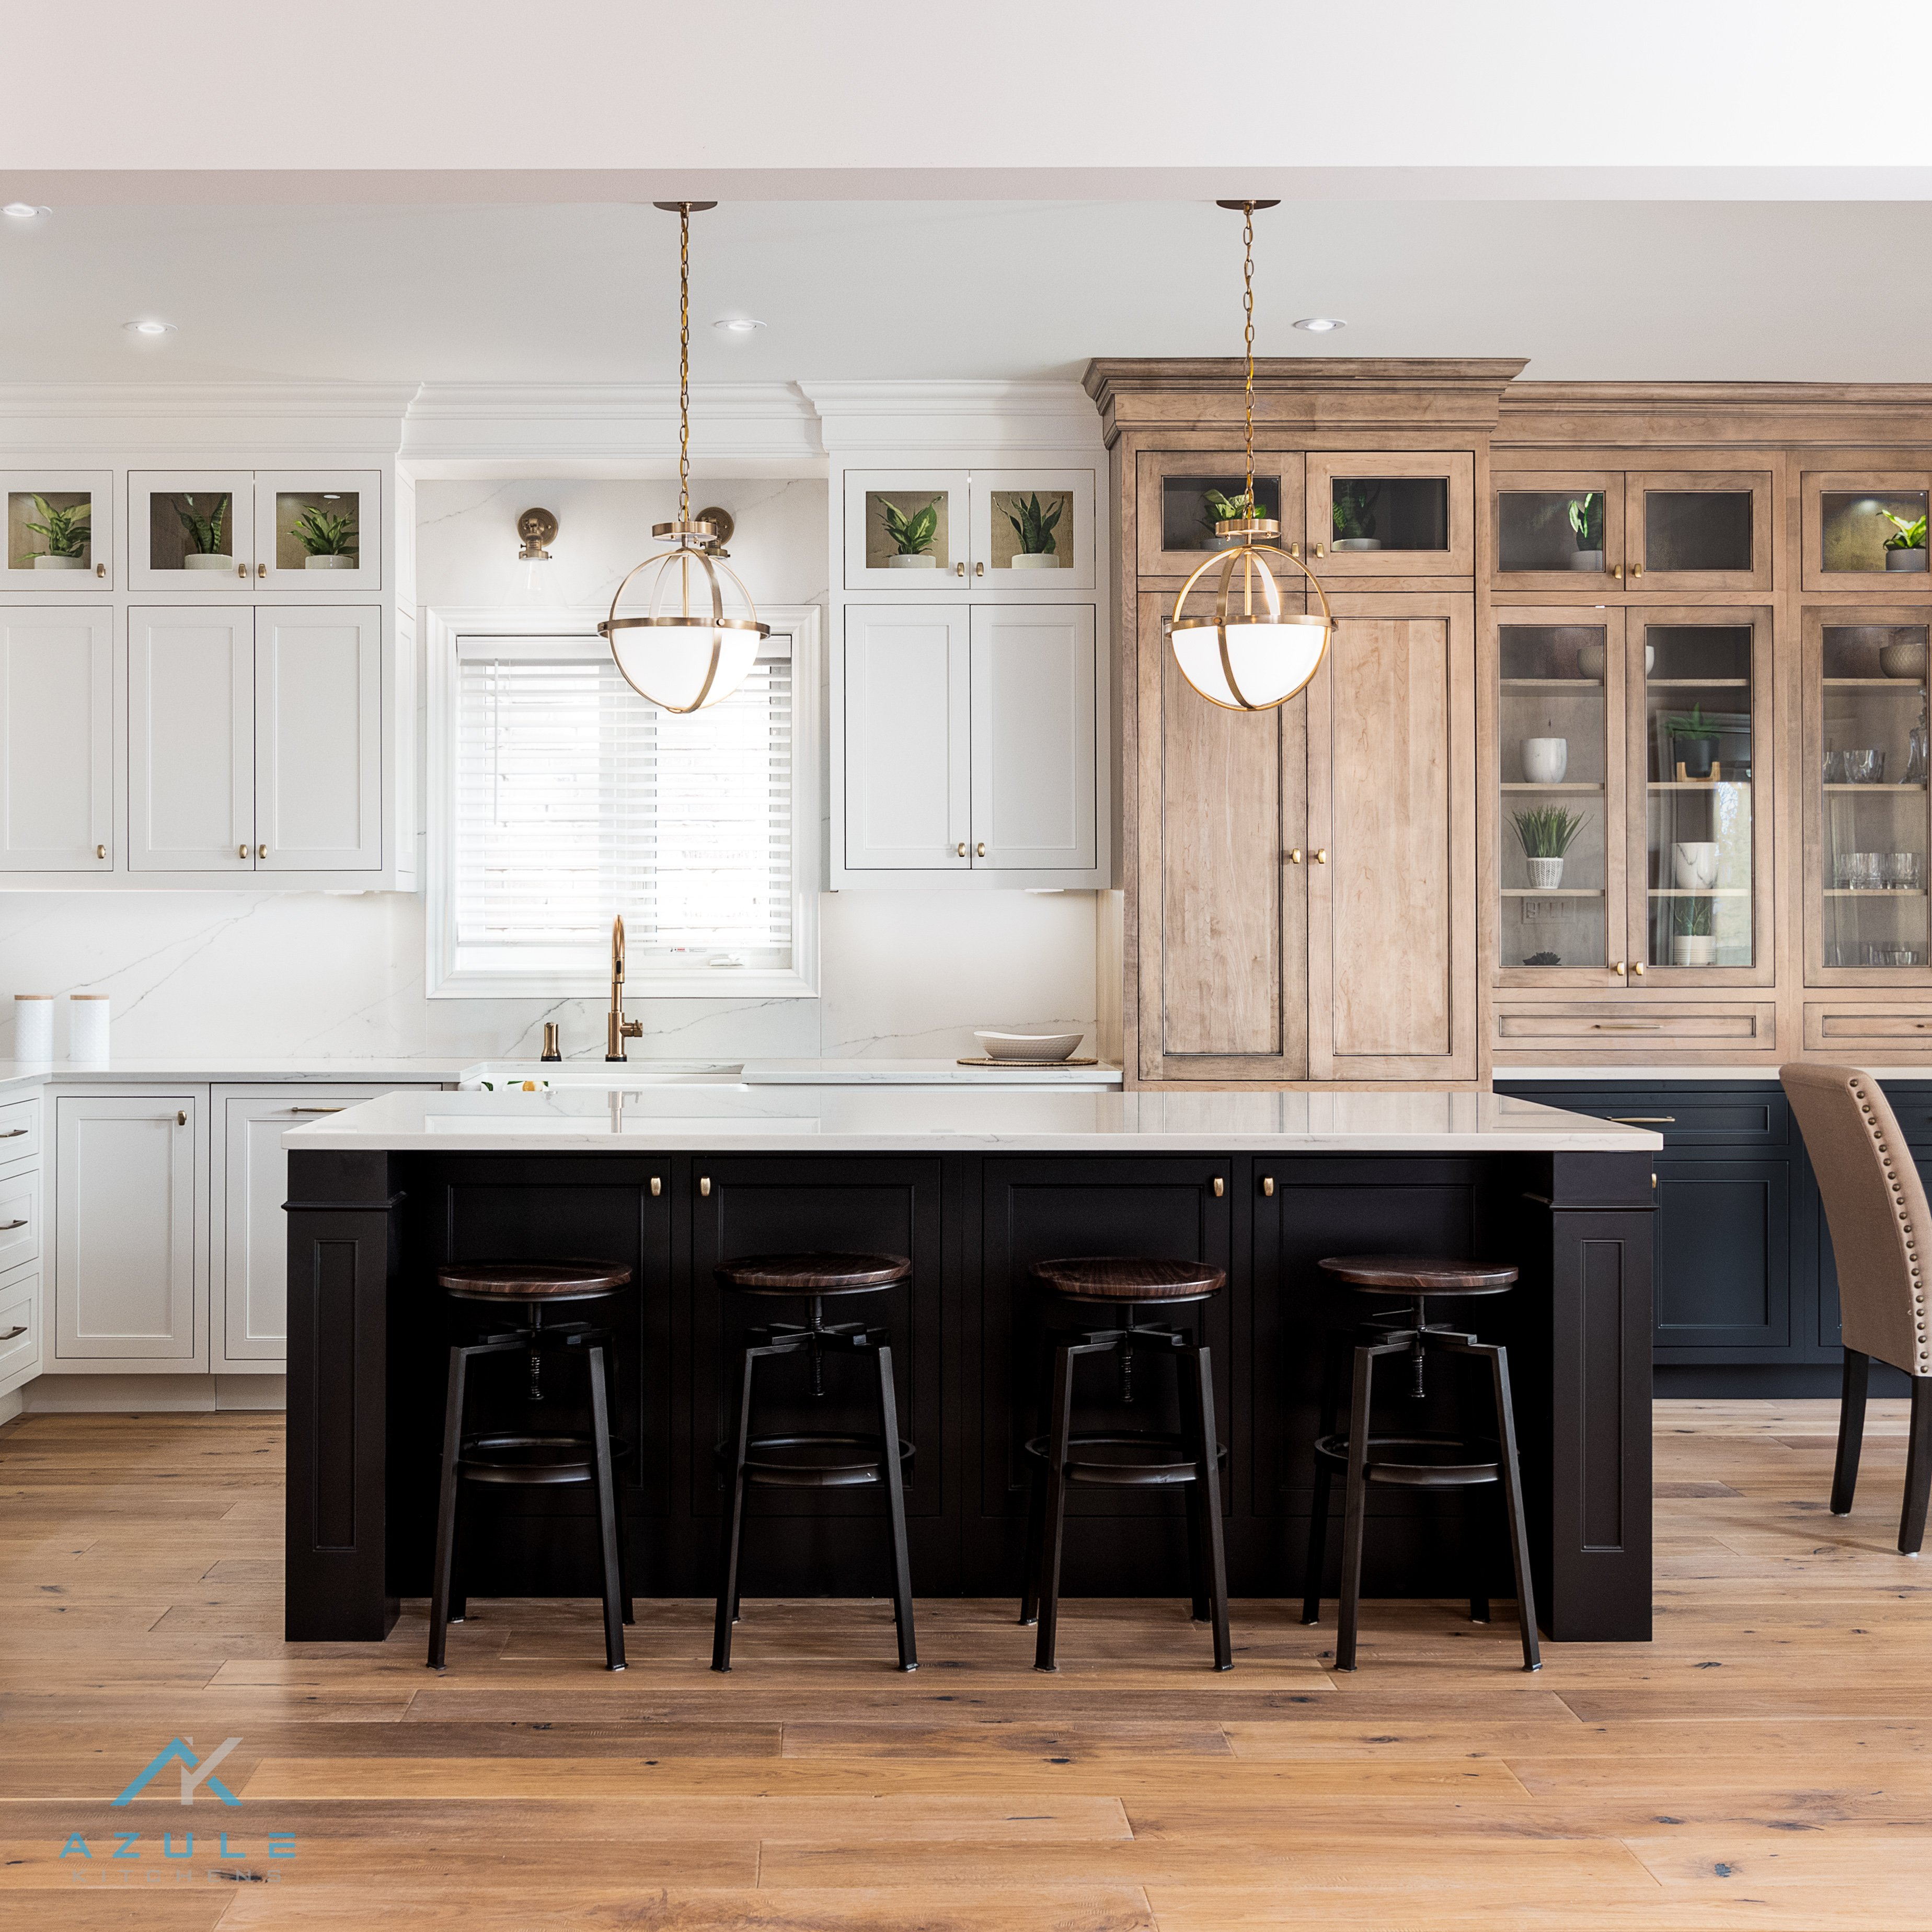 Azule kitchens – Matching Countertops with Cabinets for Stylish kitchen